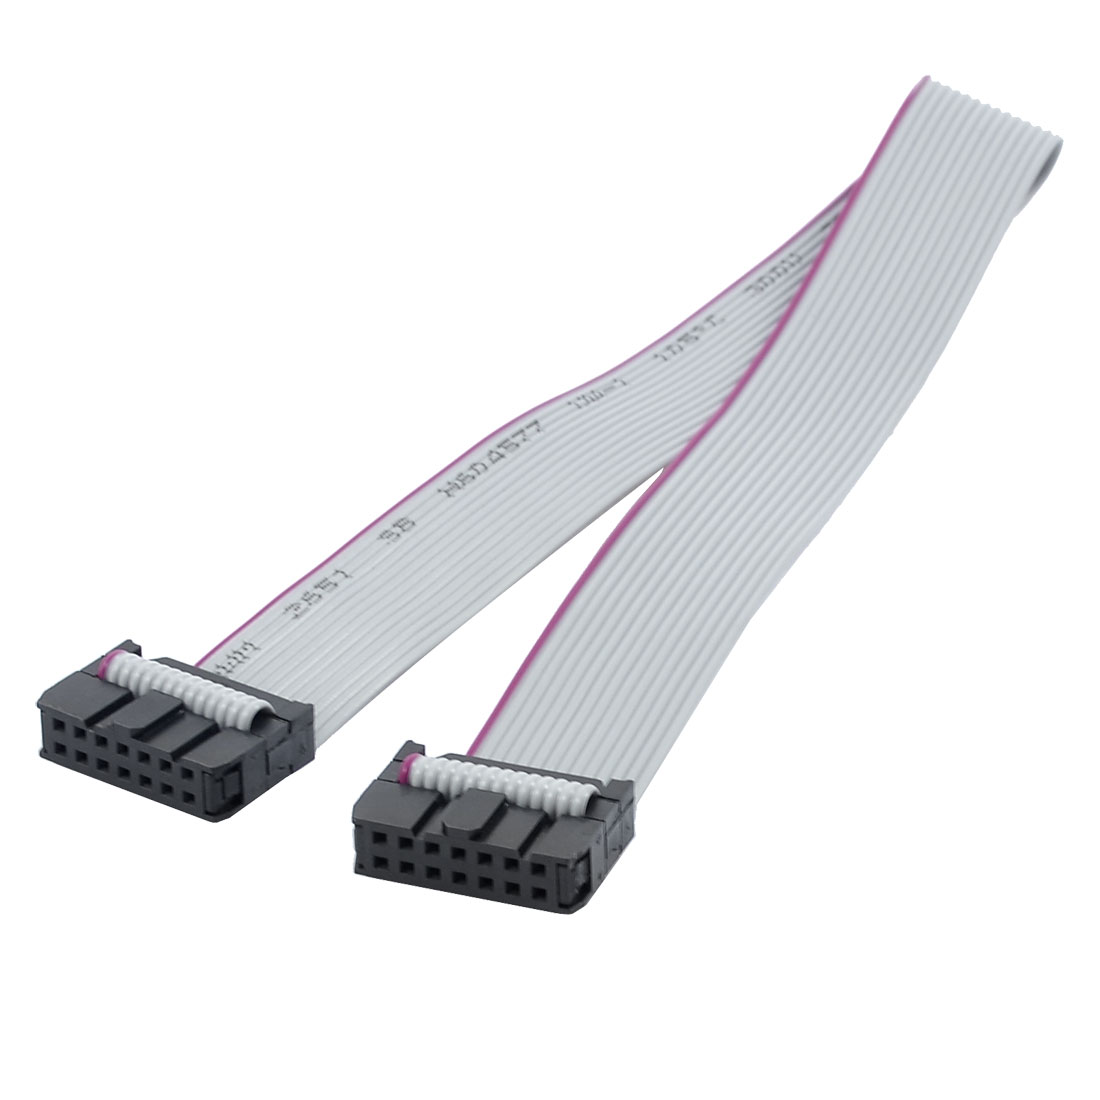 31cm Long 2.54mm Pitch 14 Pin Female to Female IDC Connector Ribbon Cable Gray